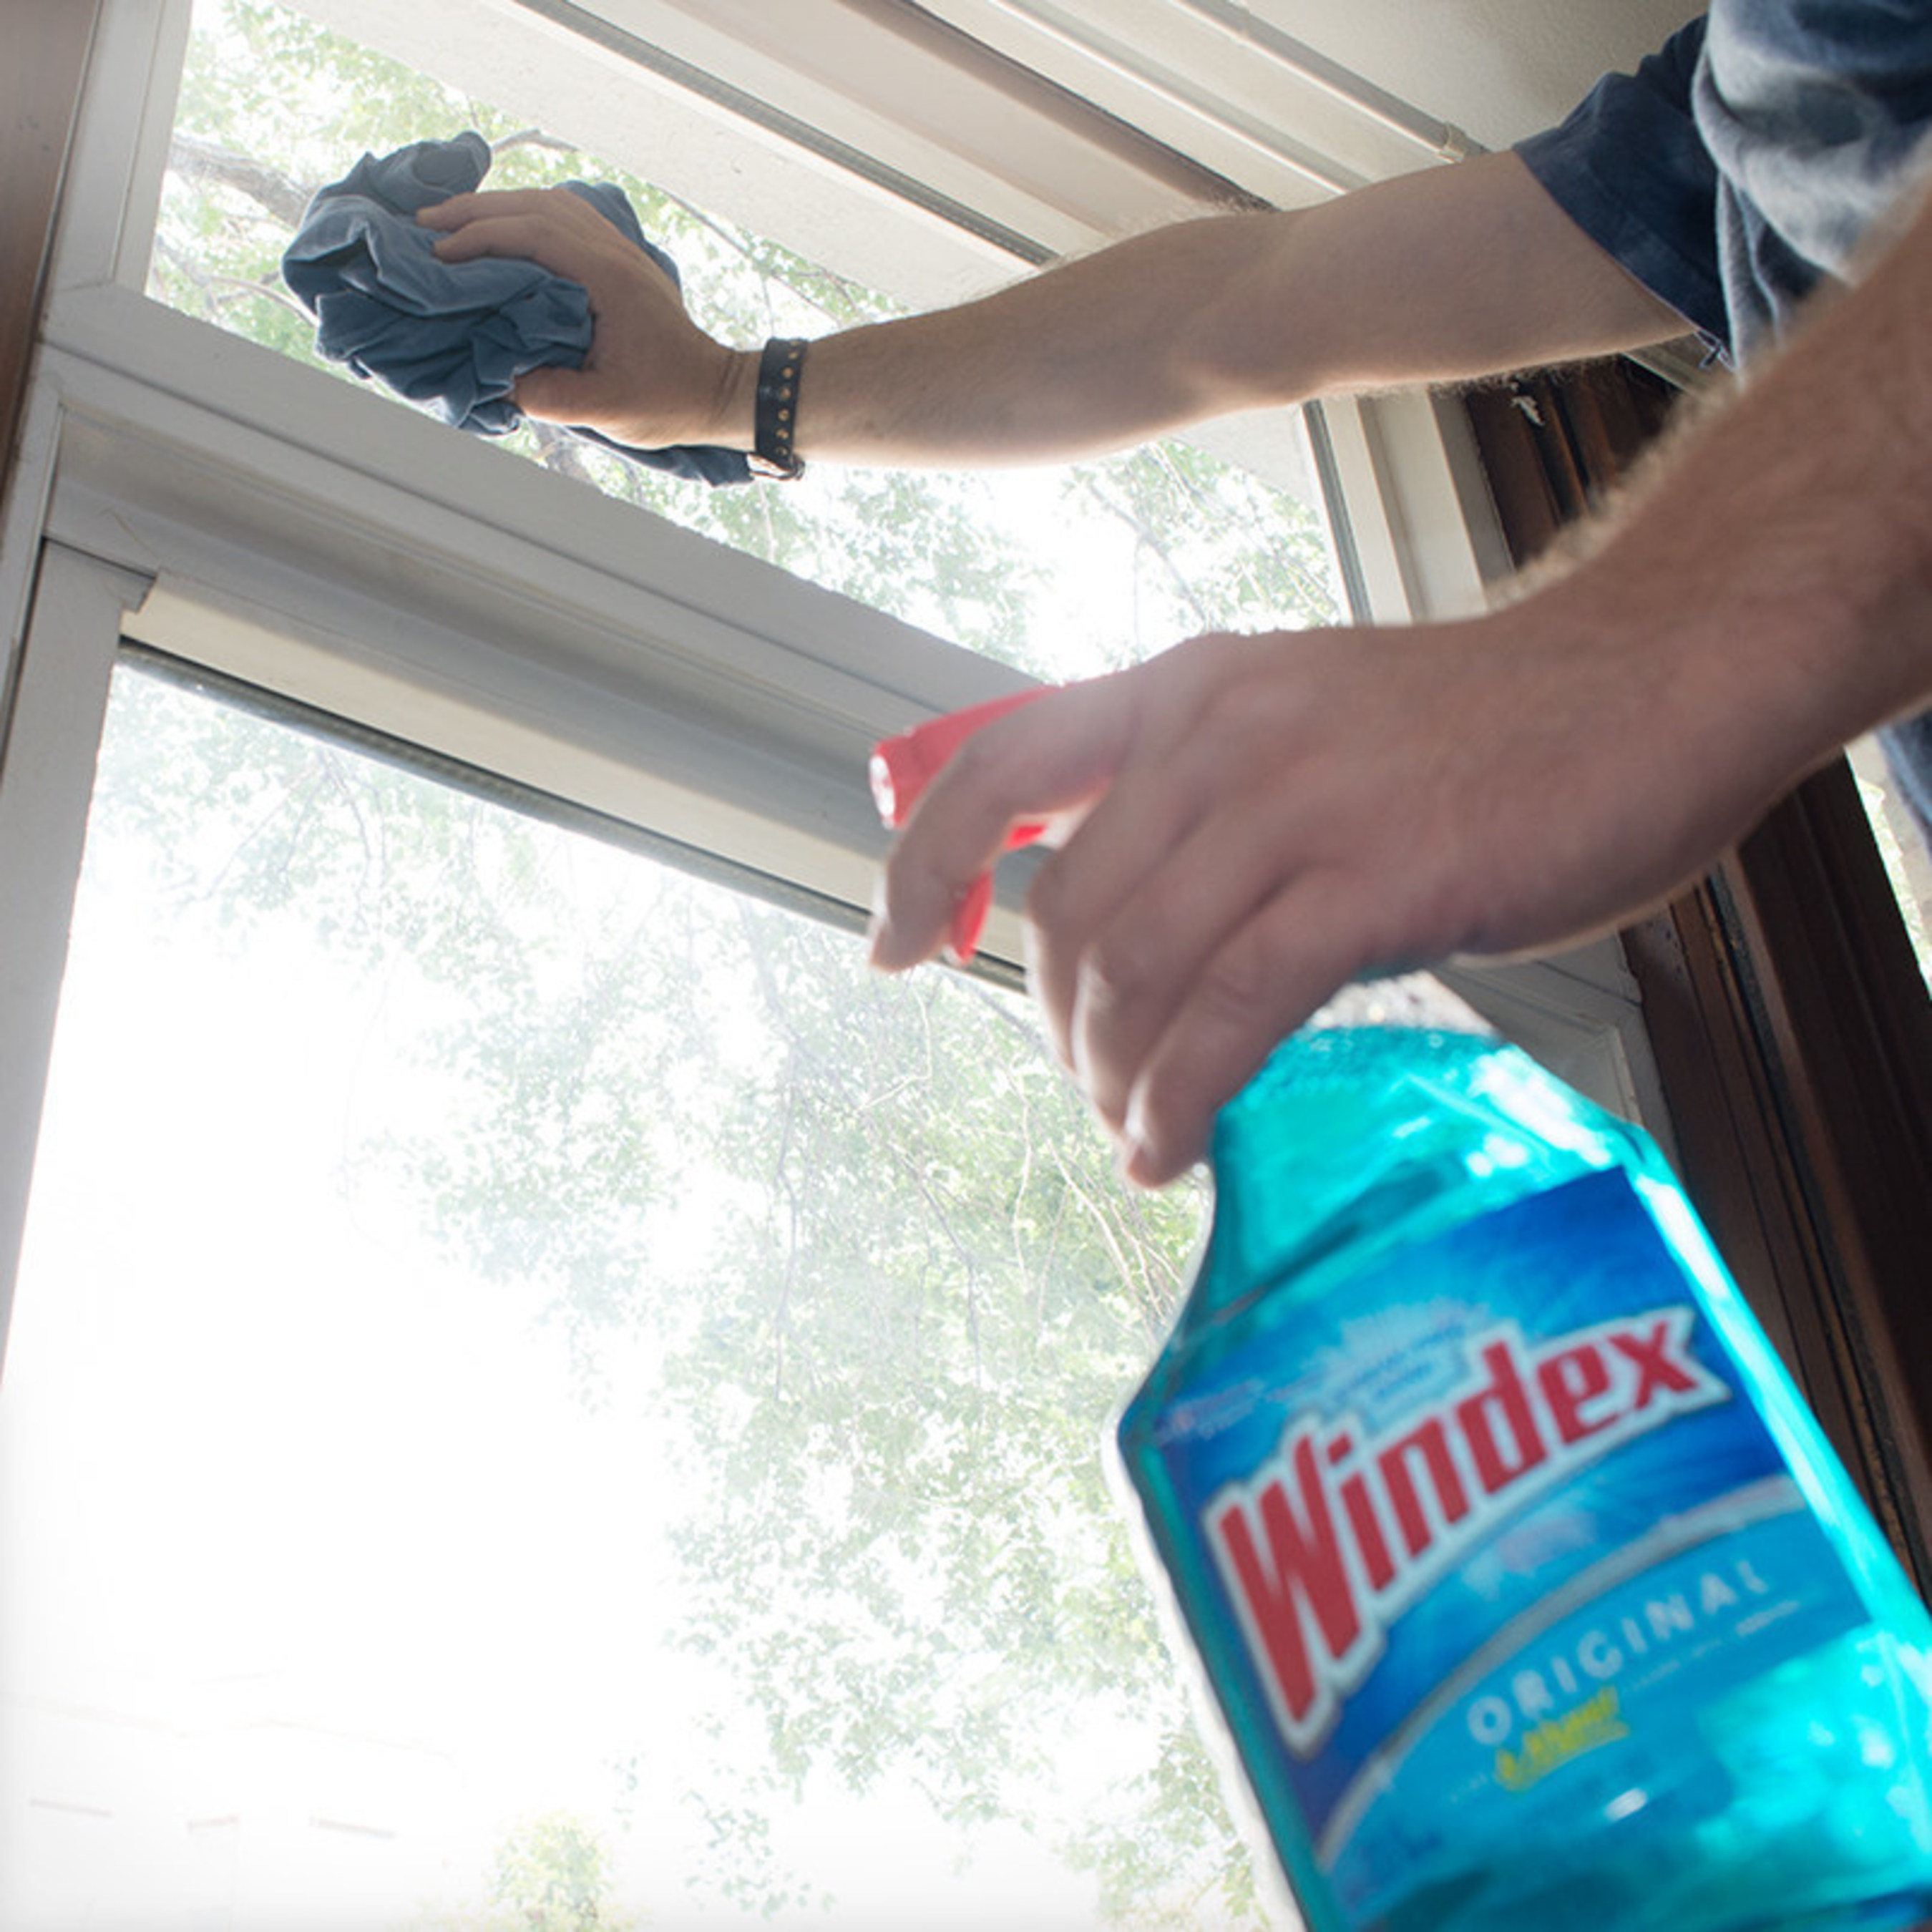 How to clean like a pro: start from top and move to bottom using Windex(R) Original Glass Cleaner